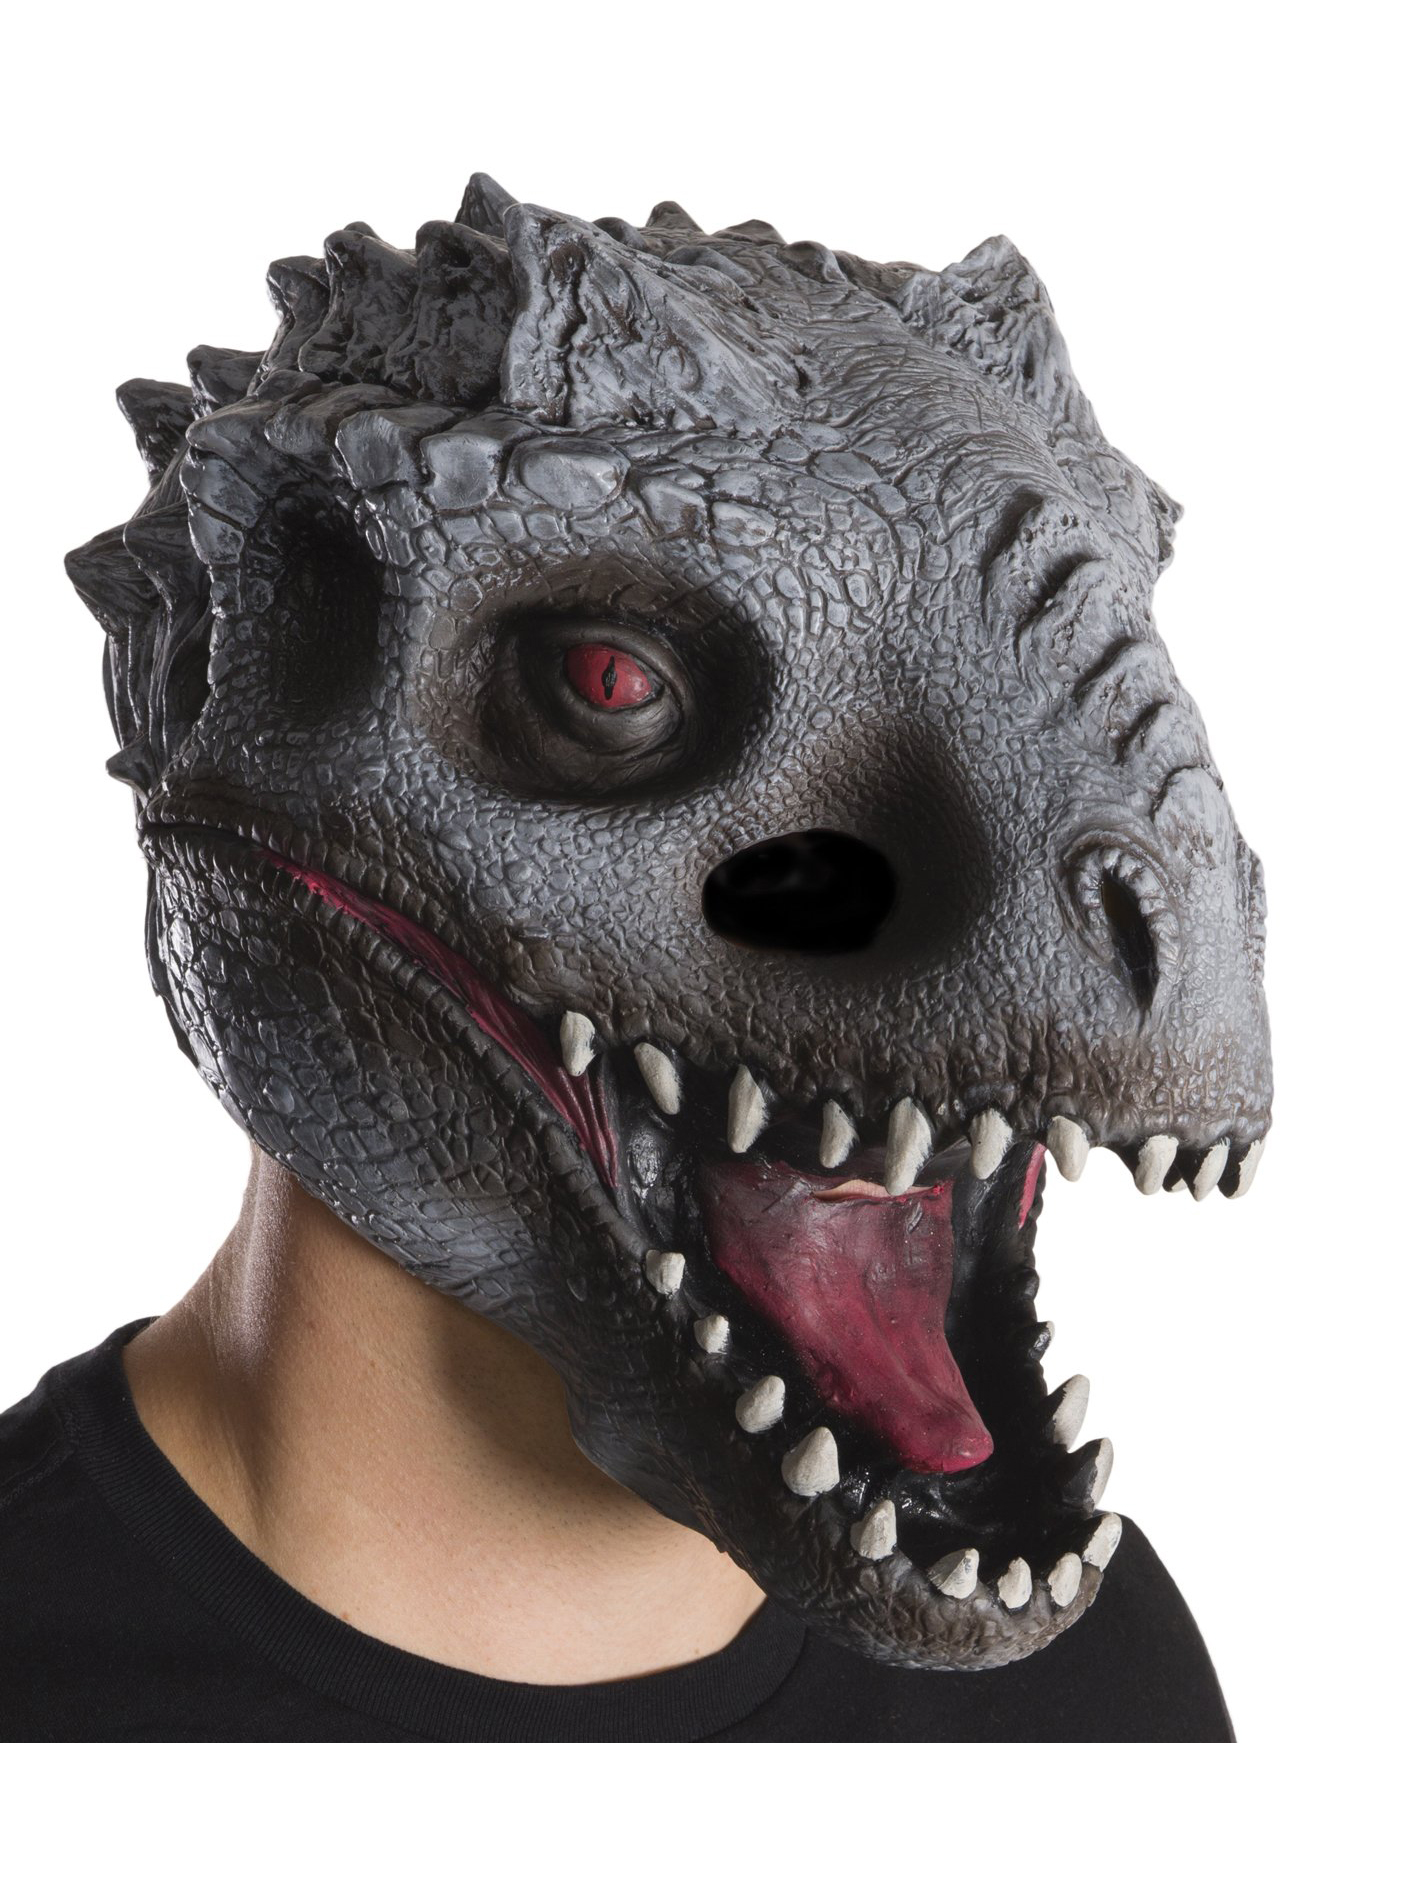 Jurassic World: Indominus Rex 3/4 Mask For Adults 36612R